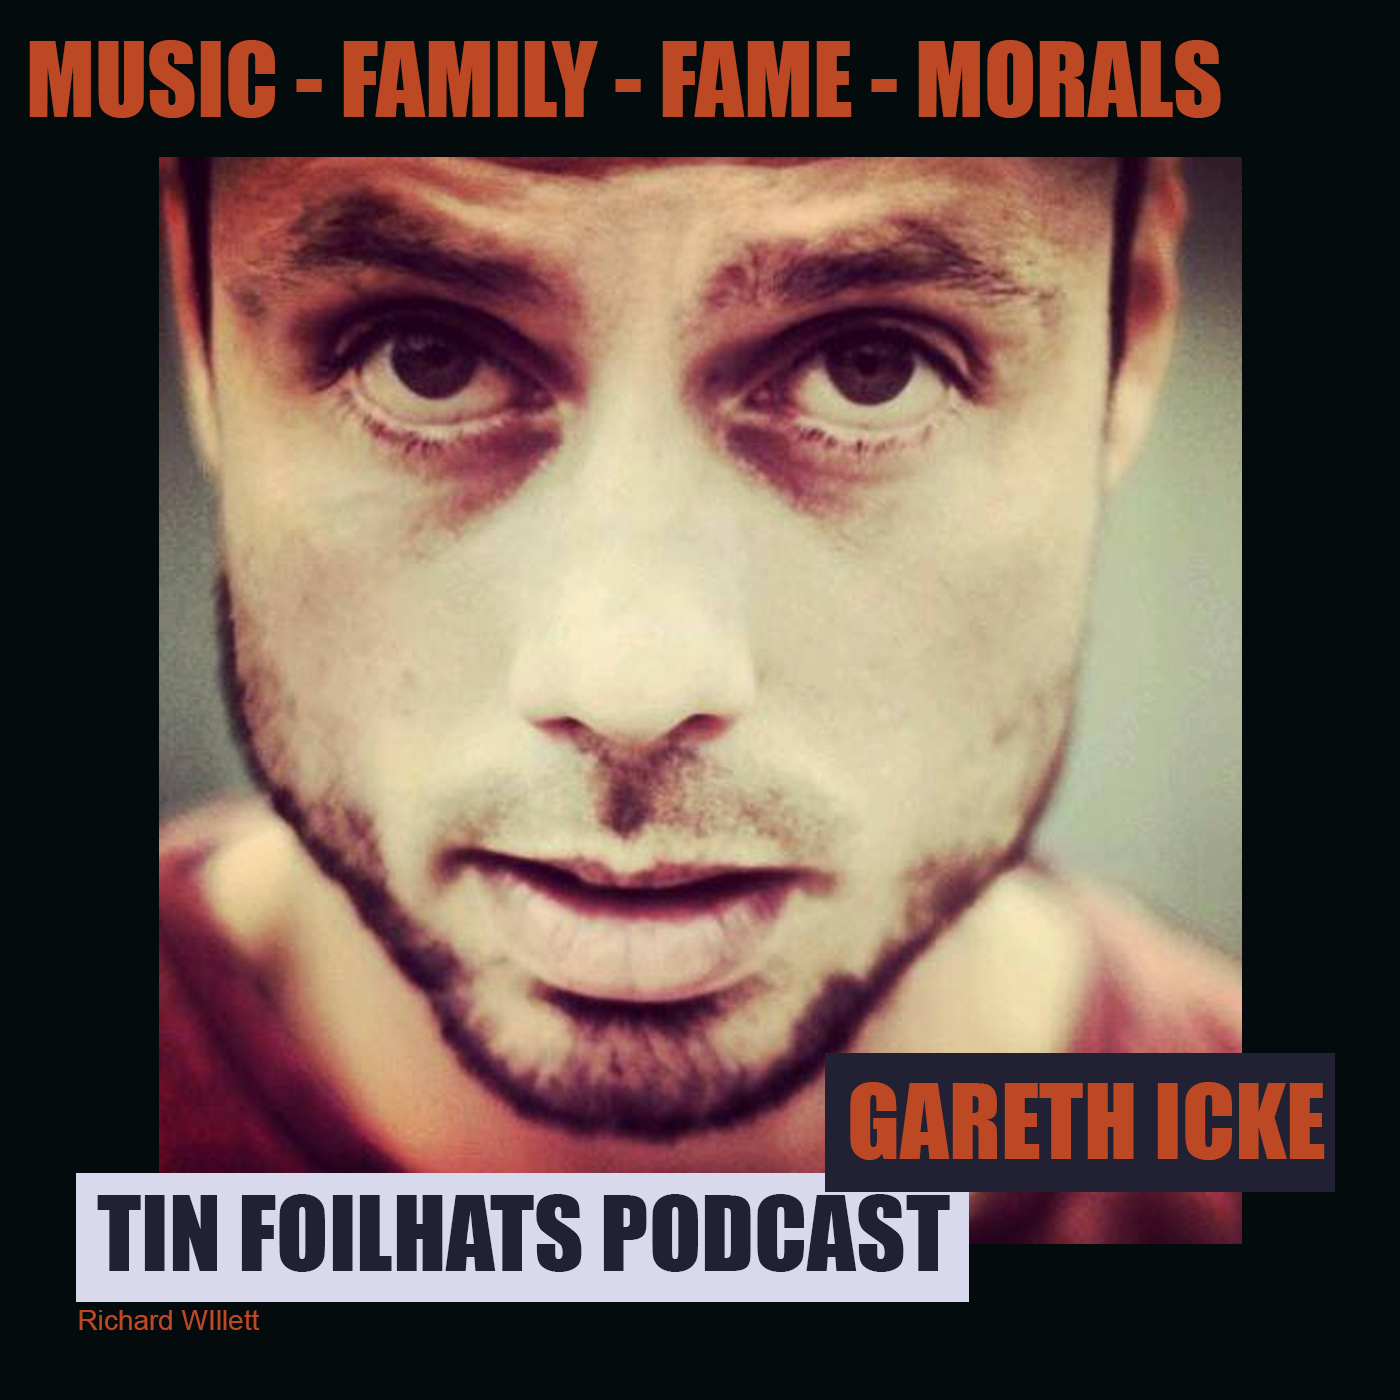 TIN FOIL HATS PODCAST - GARETH ICKE (MUSIC, FAMILY, MORALS)